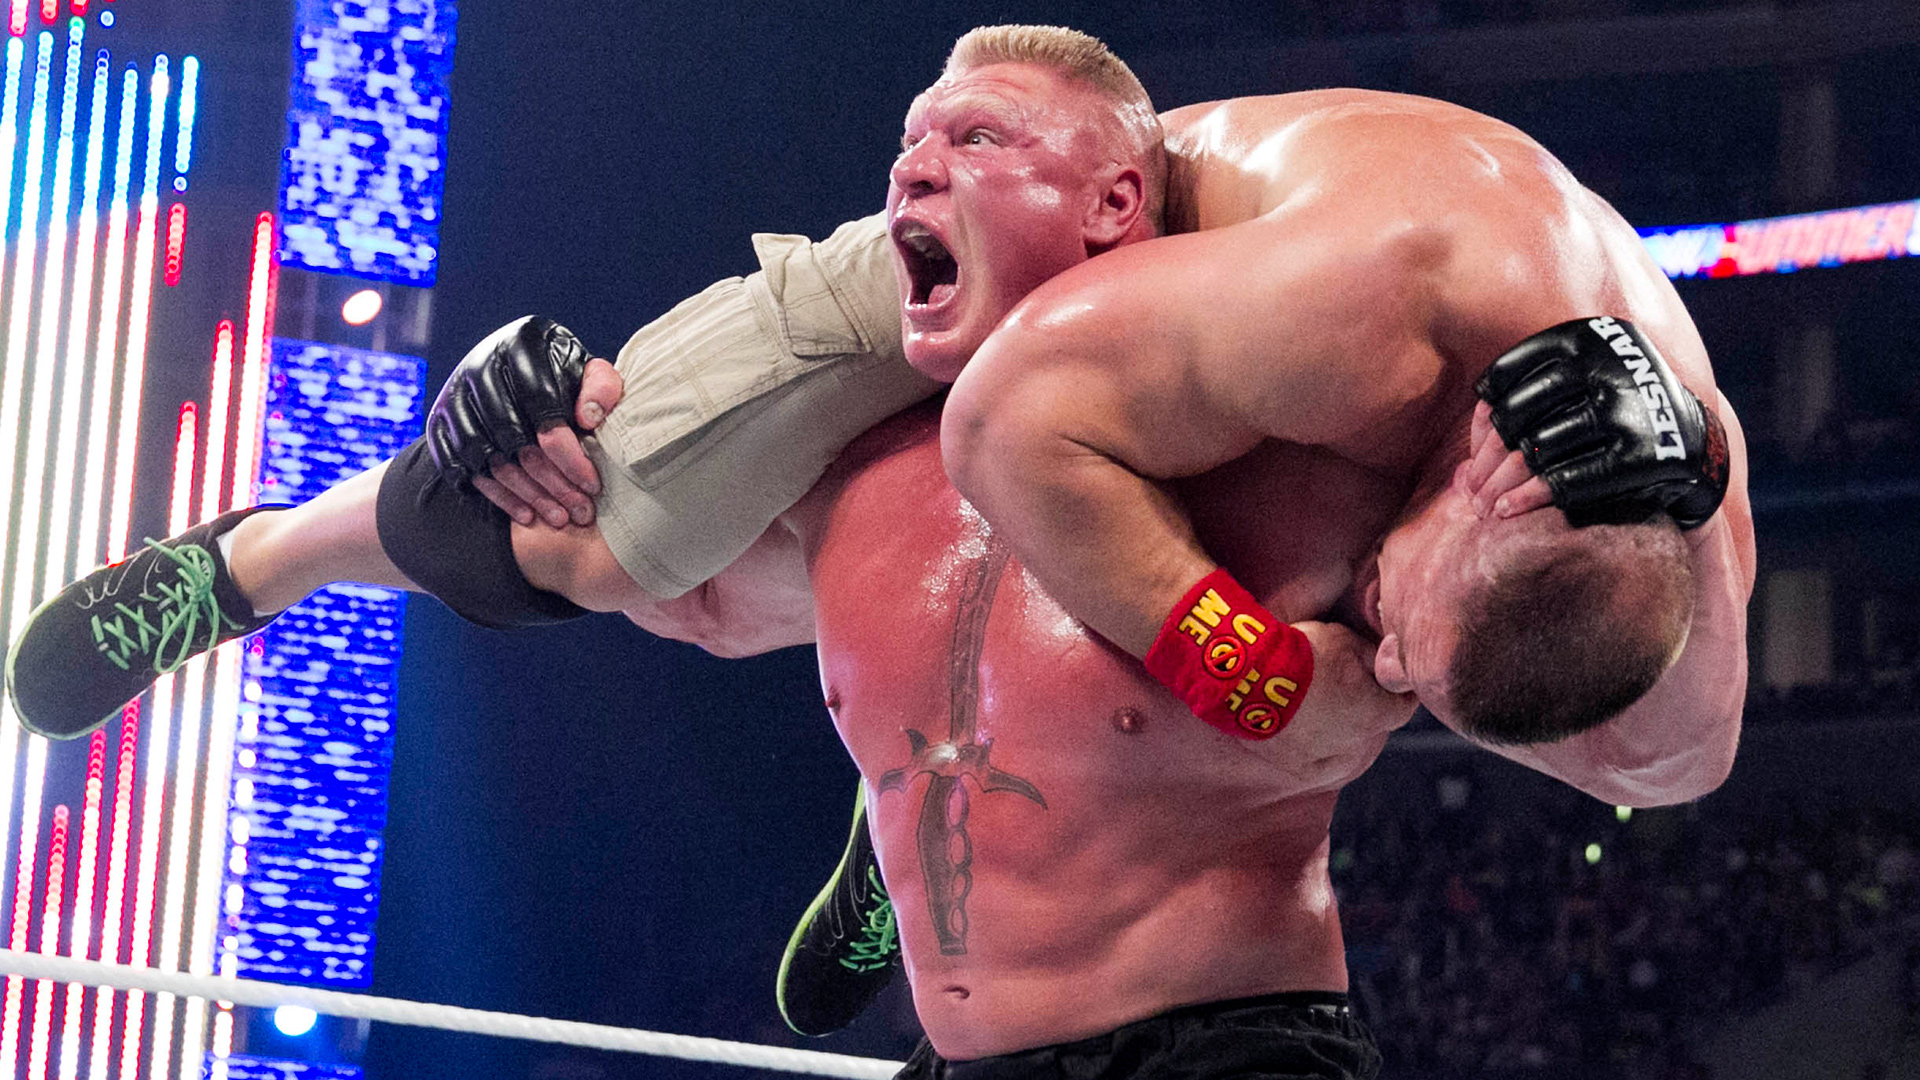 Will Brock Lesnar Return To WWE For Wrestlemania 37? - Triple H Answers 1